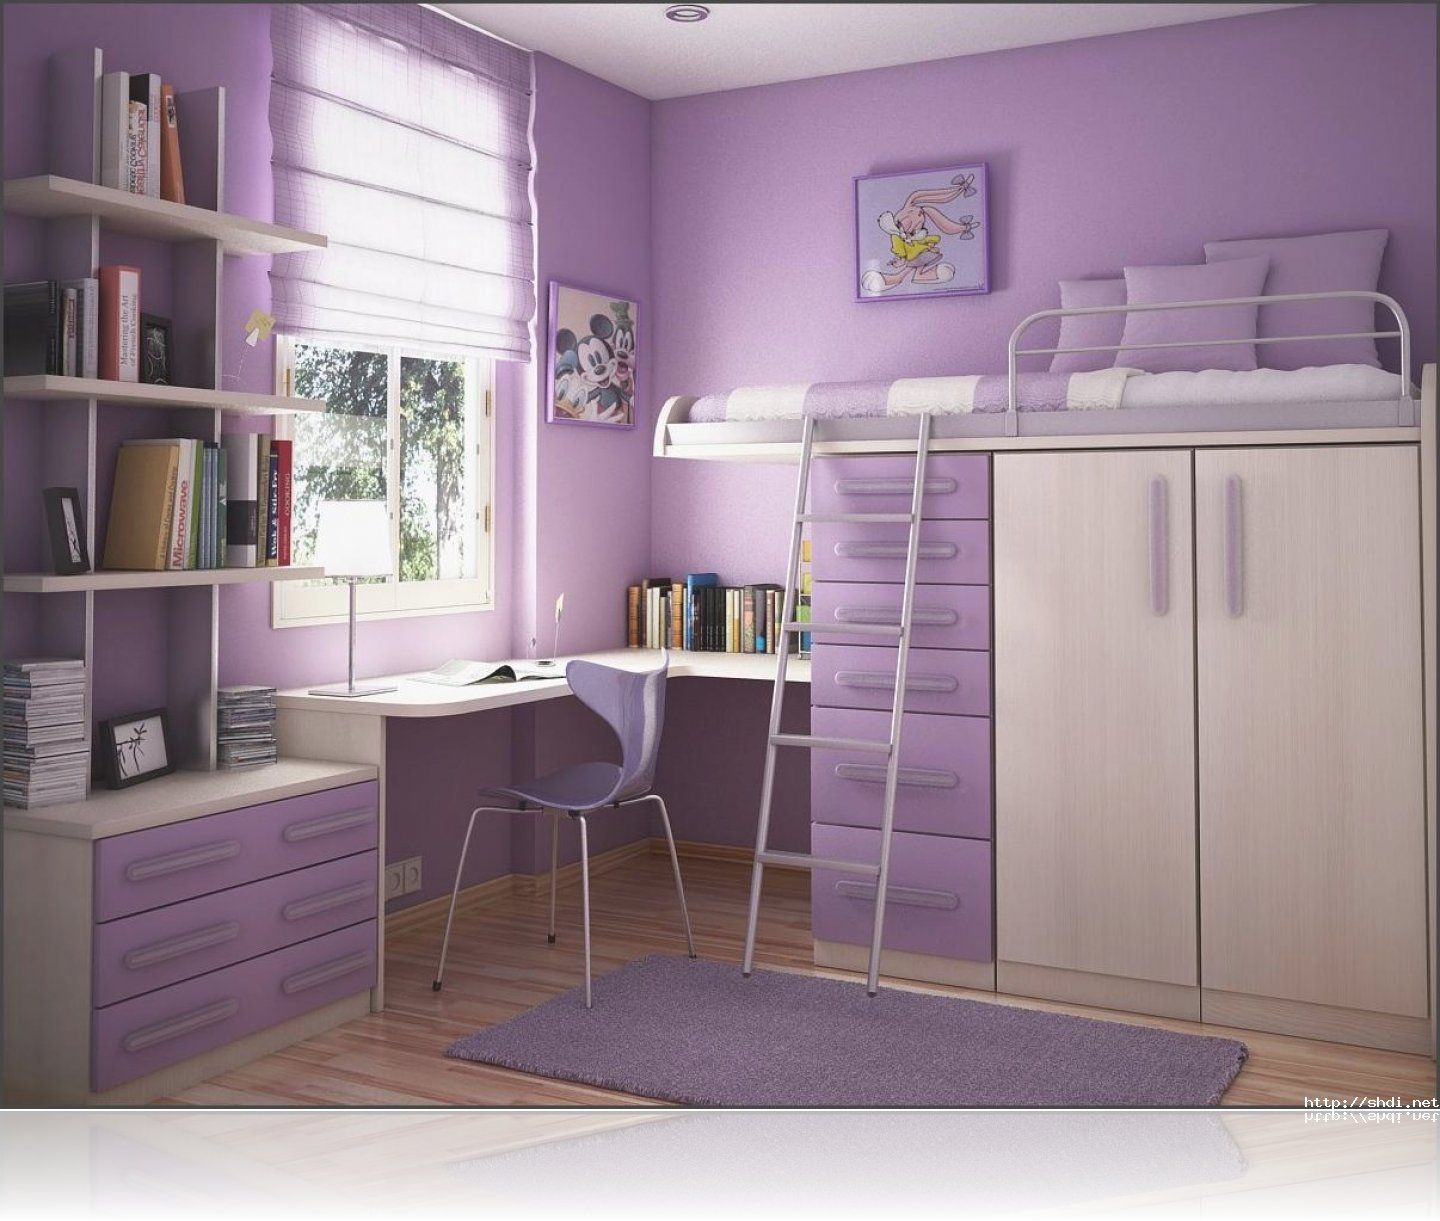 17 best images about bedroom ideas for young women on pinterest children bedroom furniture girls and bedroom ideas - Modern Girl Bedroom Ideas